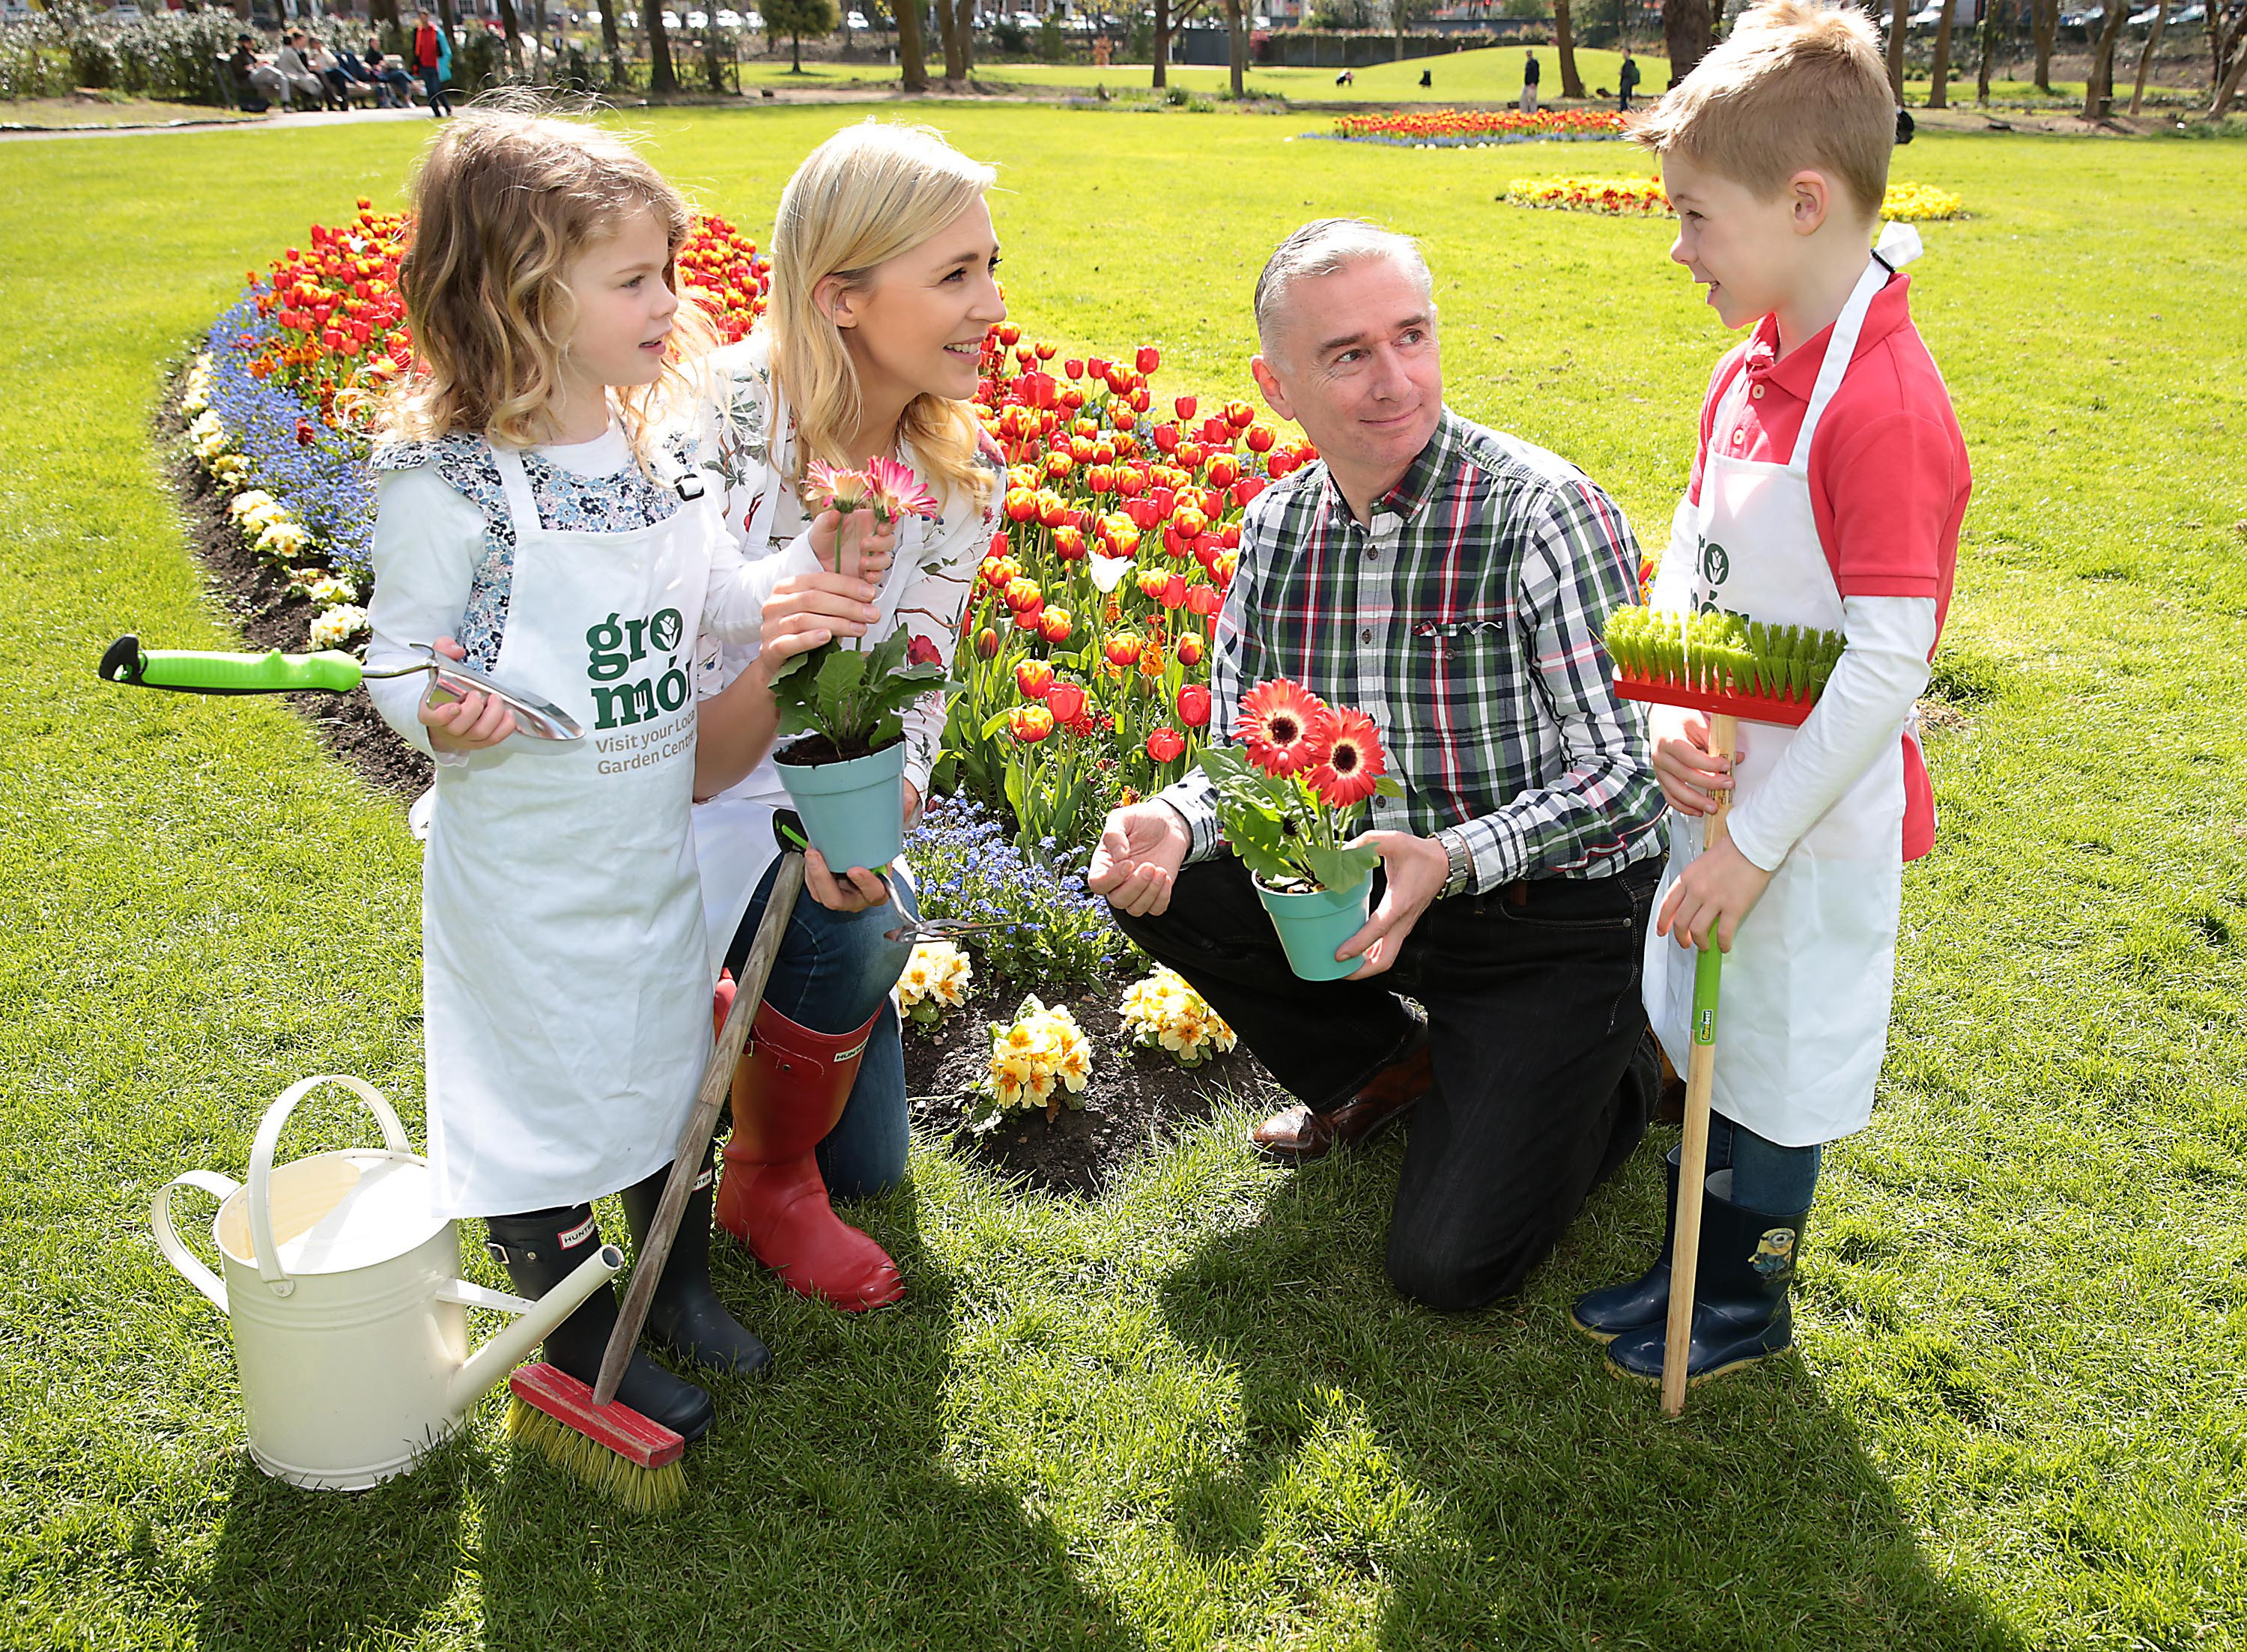 Gardening Expert Dermot O Neill pictured  with Sarah McGovern and her children  Robyn Vaughan (4) and Jude Vaughan (6) as they  launched  GroMór 2018 in Merrion Square, Dublin  ahead of  Lá Bealtaine 1st May which officially marks the start of summer.  GroMór 2018, a nationwide campaign is aimed at encouraging everyone to visit their local garden centres and get growing  Pic Brian McEvoy No Repro fee for one use    GroMór is an initiative by Retail Excellence Ireland in association with Bord Bia and nursery growers, promoting its 75 local garden centres and nurseries located across the country. These centres are available to offer free expert advice to people in all age groups, from novices and new homeowners to experienced gardeners.  Find out how to best grow plants, herbs, flowers, fruits, vegetables, whether it be on a windowsill, balcony or in a garden. Also discover the health benefits associated with gardening or how to introduce the wonder of nature to children www.gromor.ie.